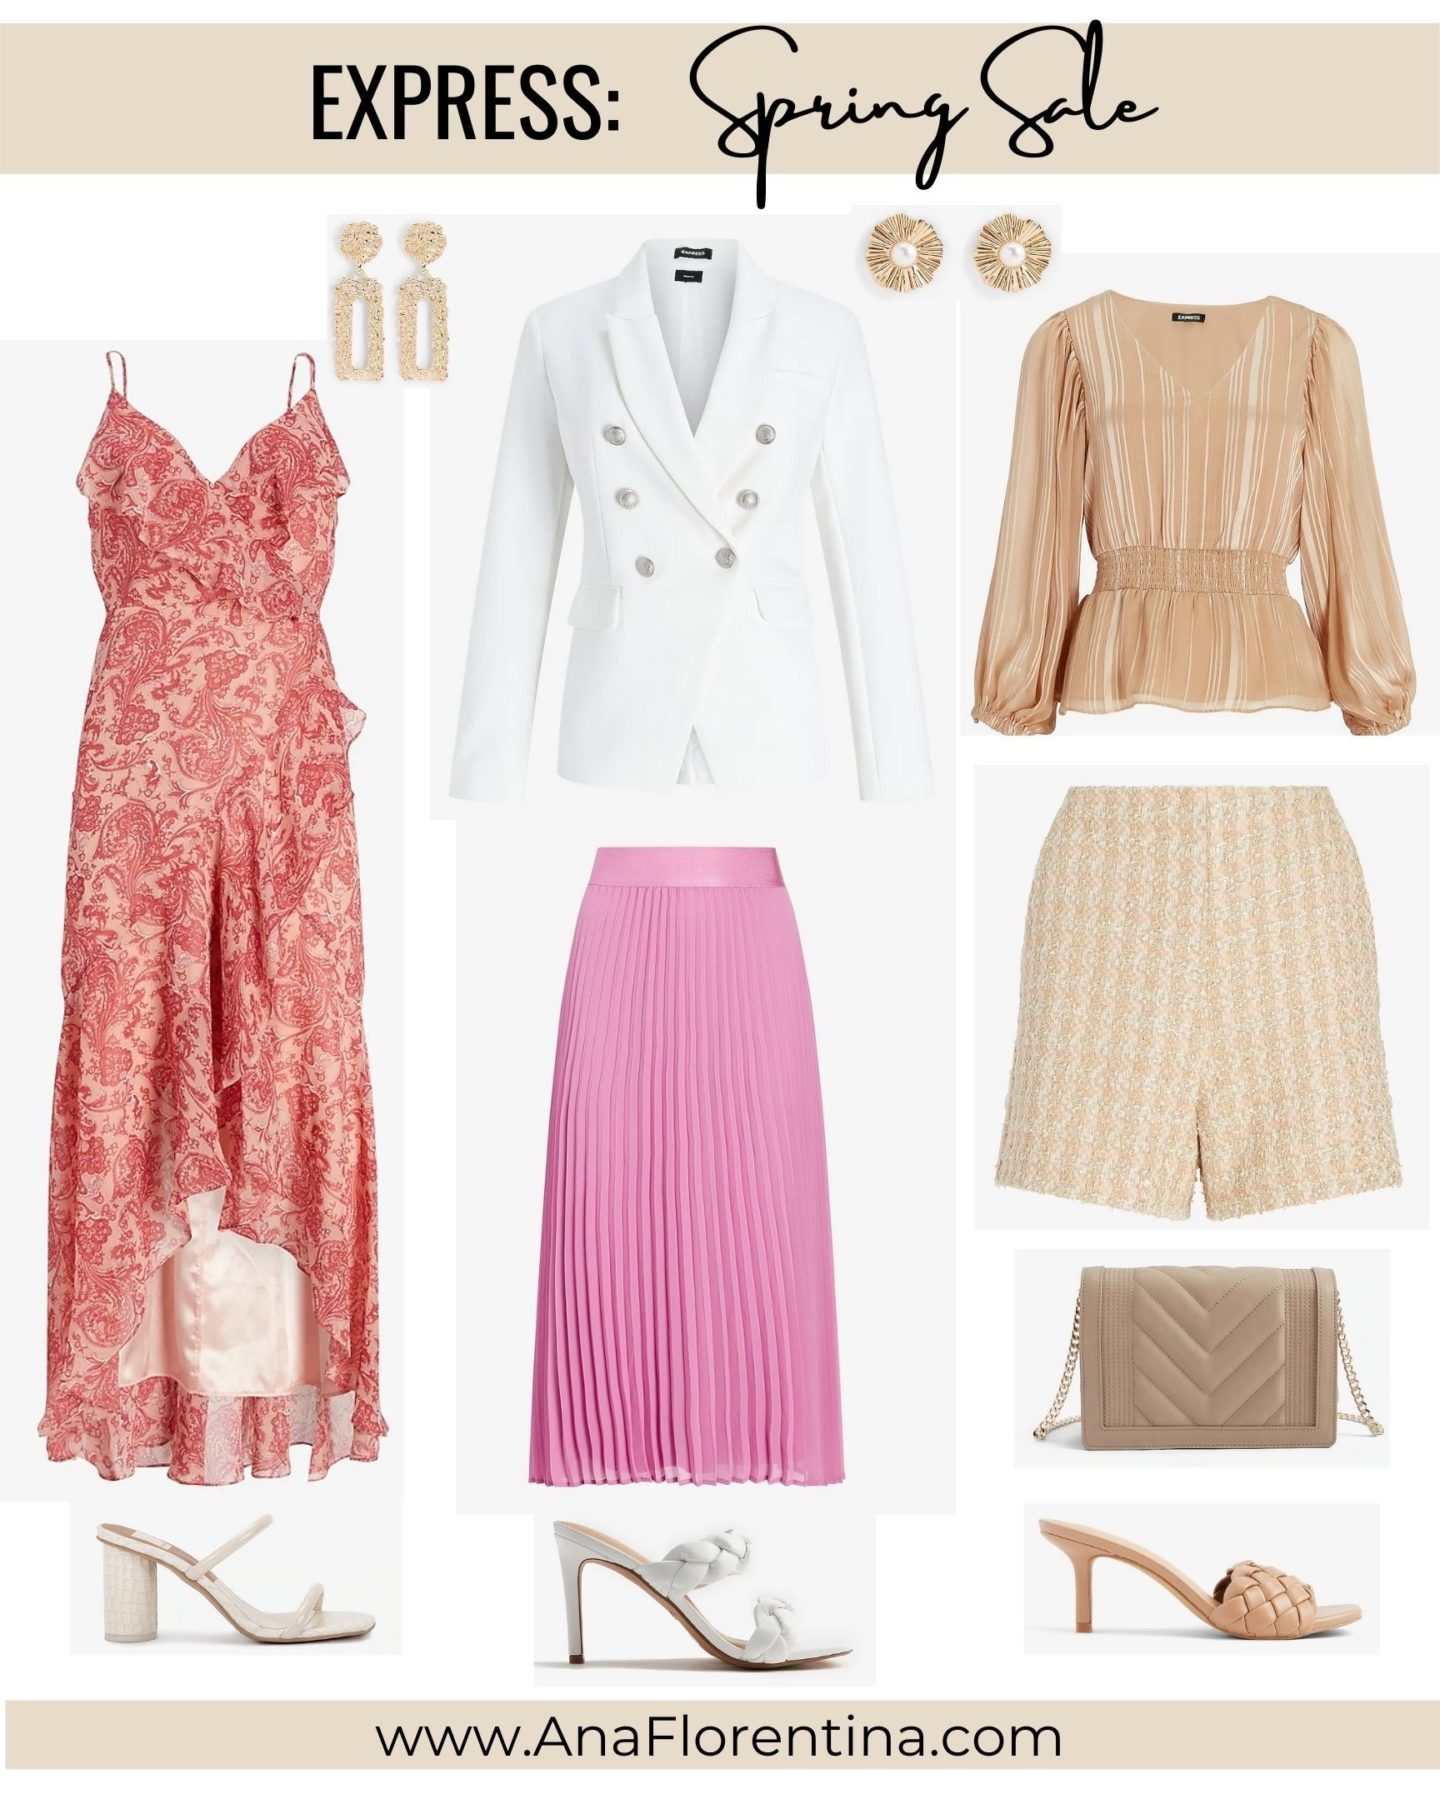 Spring-outfit-ideas-by-Ana-Florentina